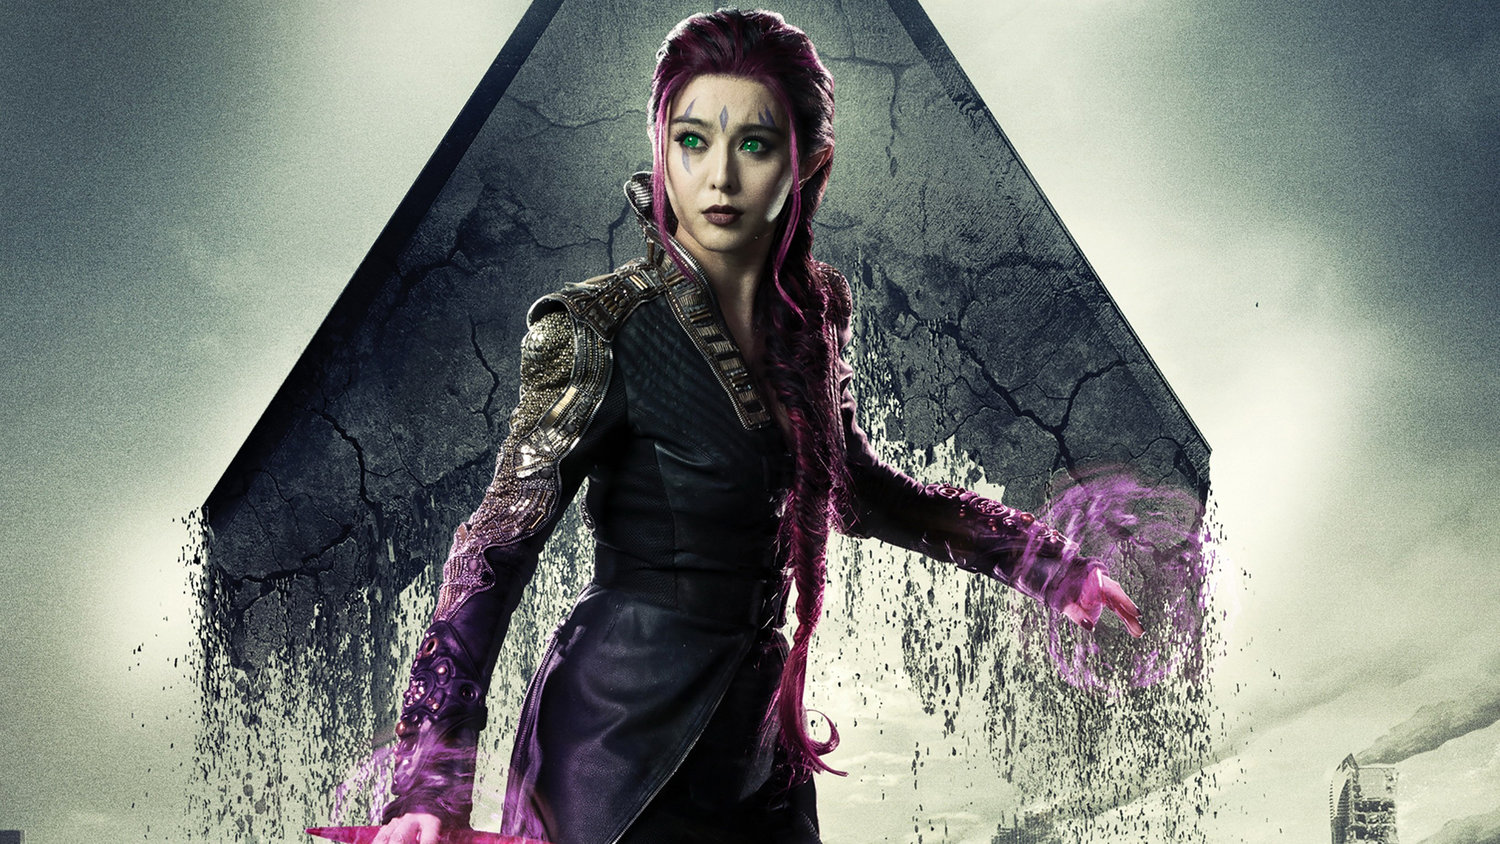 X-MEN: DAYS OF FUTURE PAST Actress Fan Bingbing Caught Up In Huge